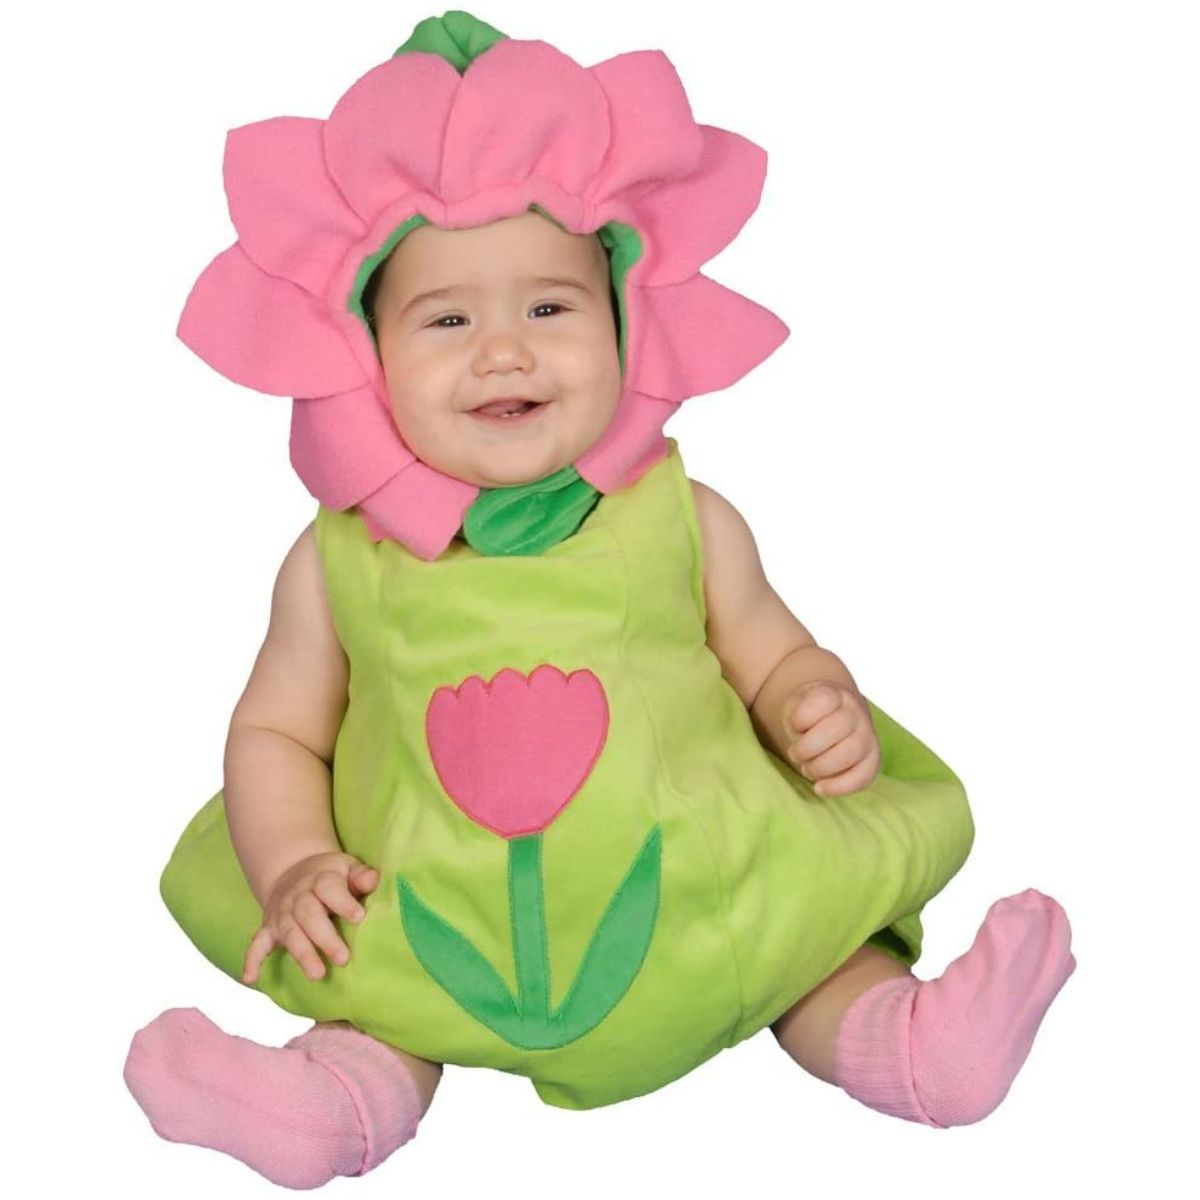 Dress Up America Dazzling Baby Flower Costume Set 12-24 mo. 278-24M